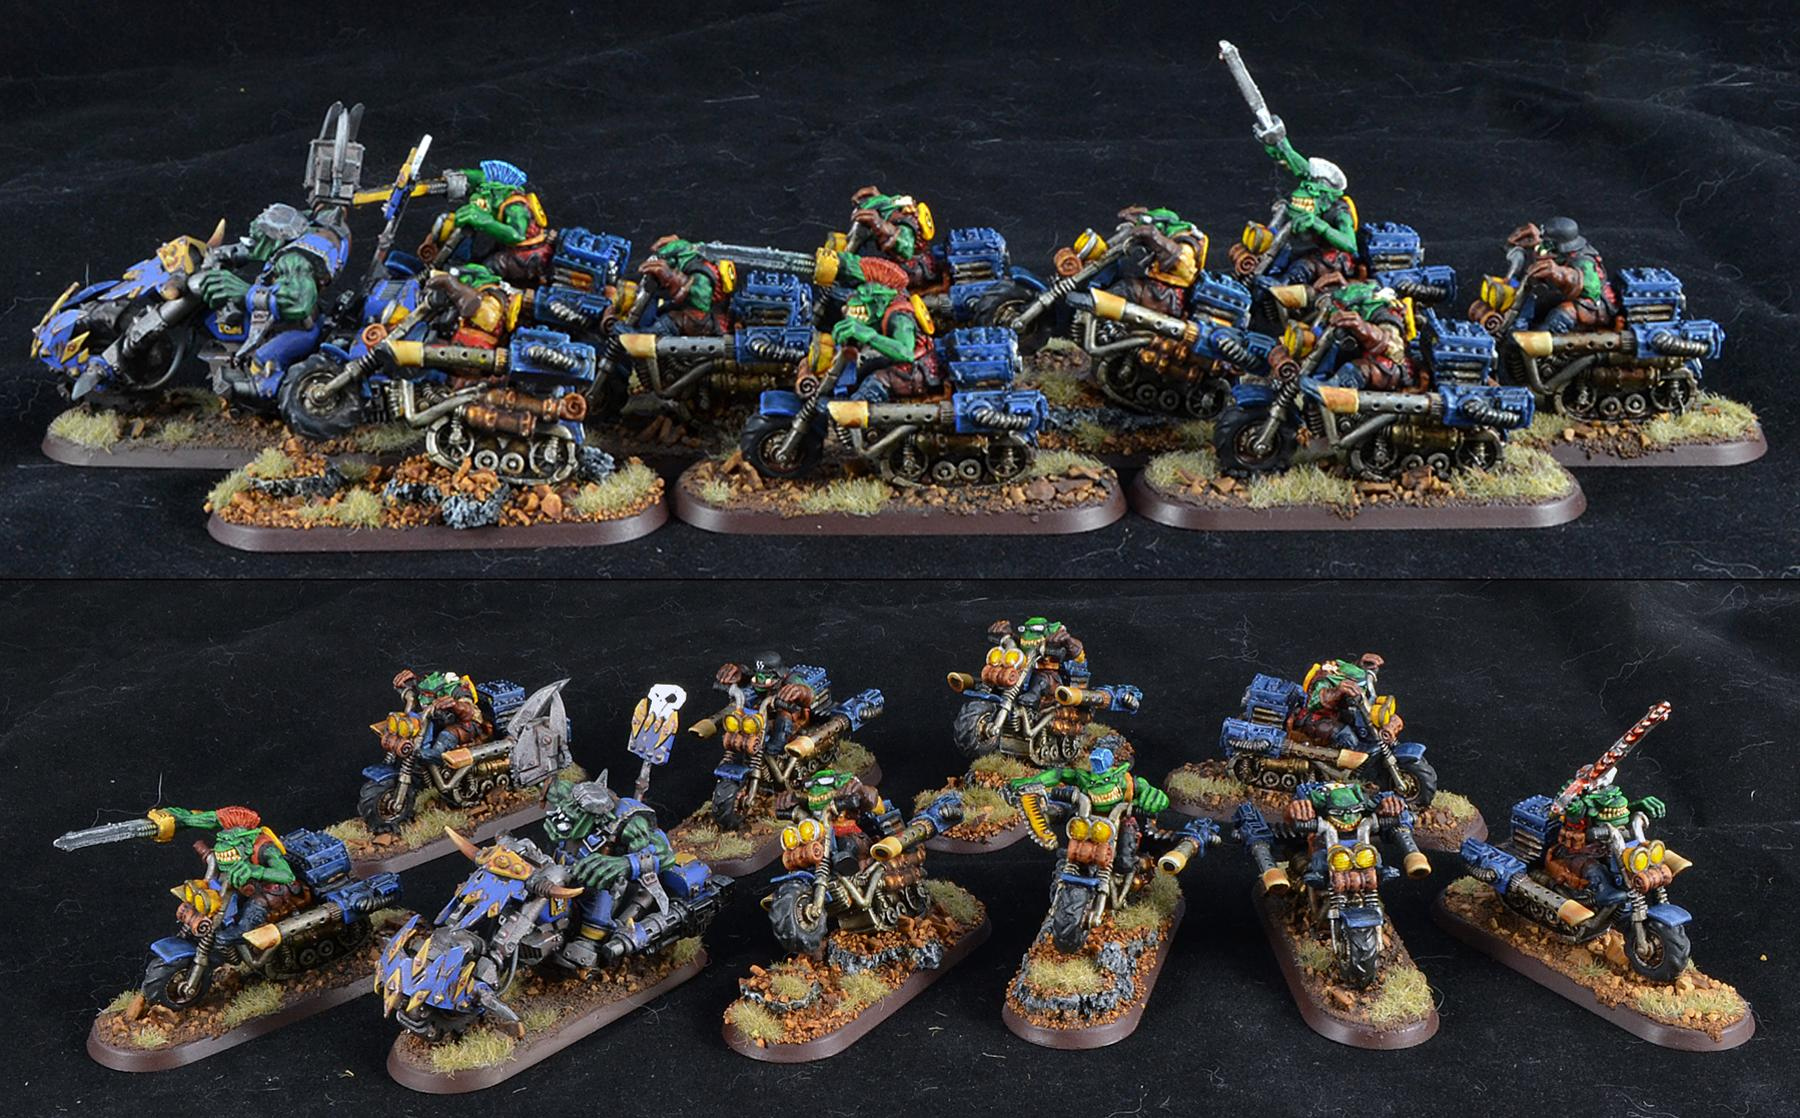 Bad Moons, Gretchin, Orks, Rt, Warbikers, Warhammer 40,000